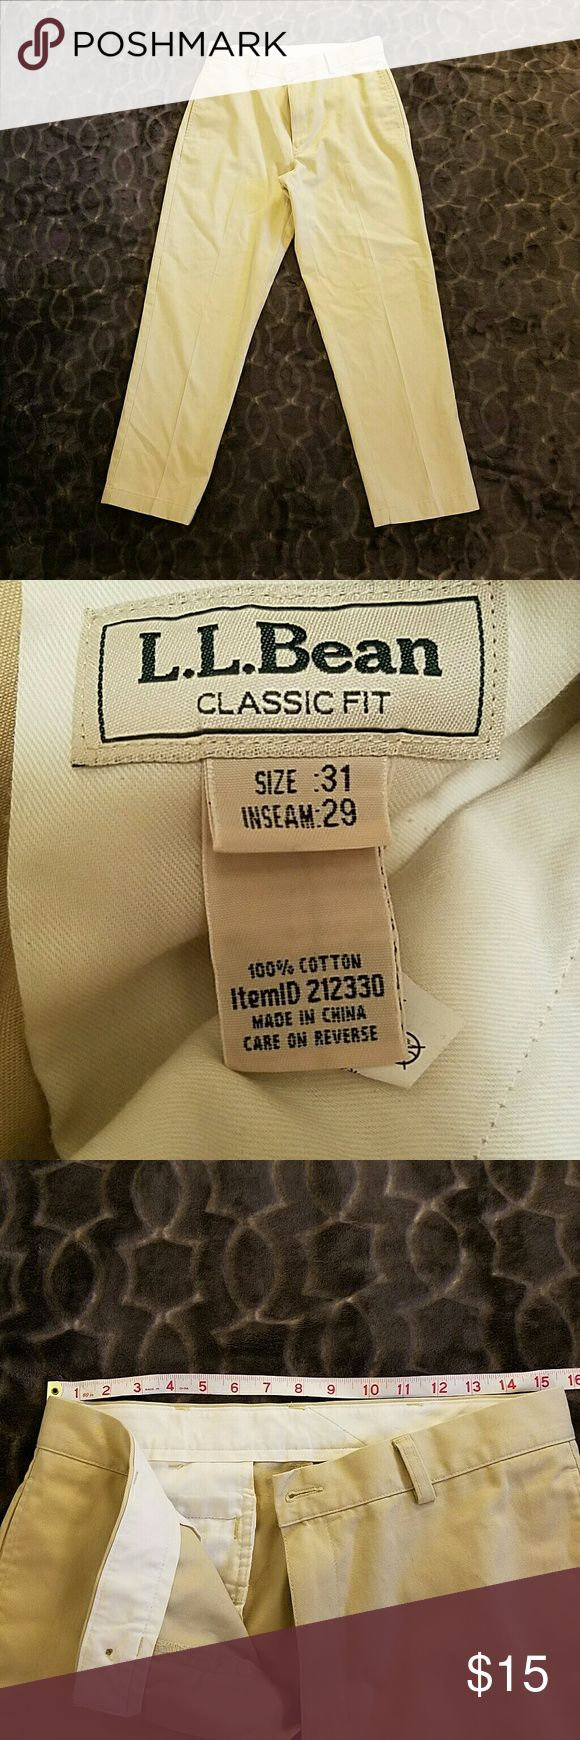 L.L. Bean men's Khaki pants L.L. Bean men's Khaki pants   Photos include measurements; waist, hips, outer seam length, leg width, ankle width L.L. Bean Pants Chinos & Khakis